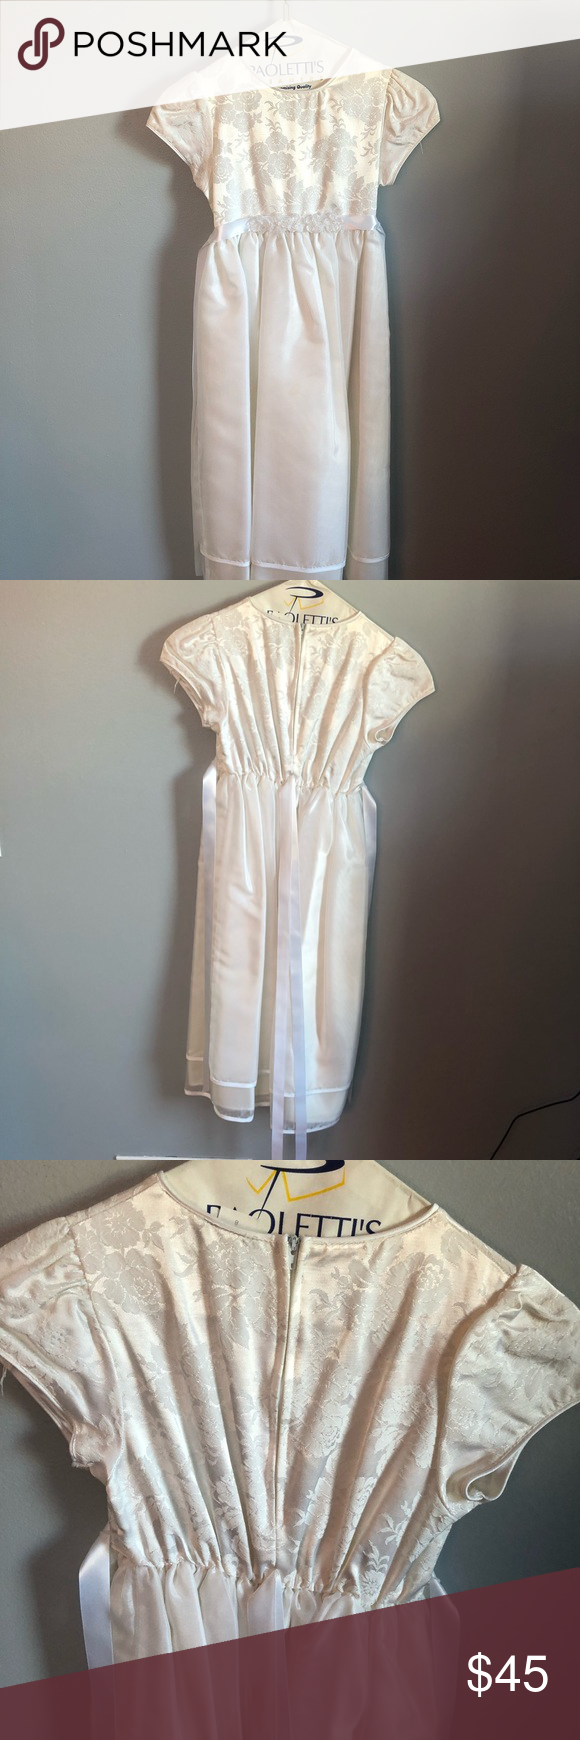 8b9e3eabf6d1 First Communion / Flower Girl Dress Worn once great condition Rare Editions  Dresses Formal